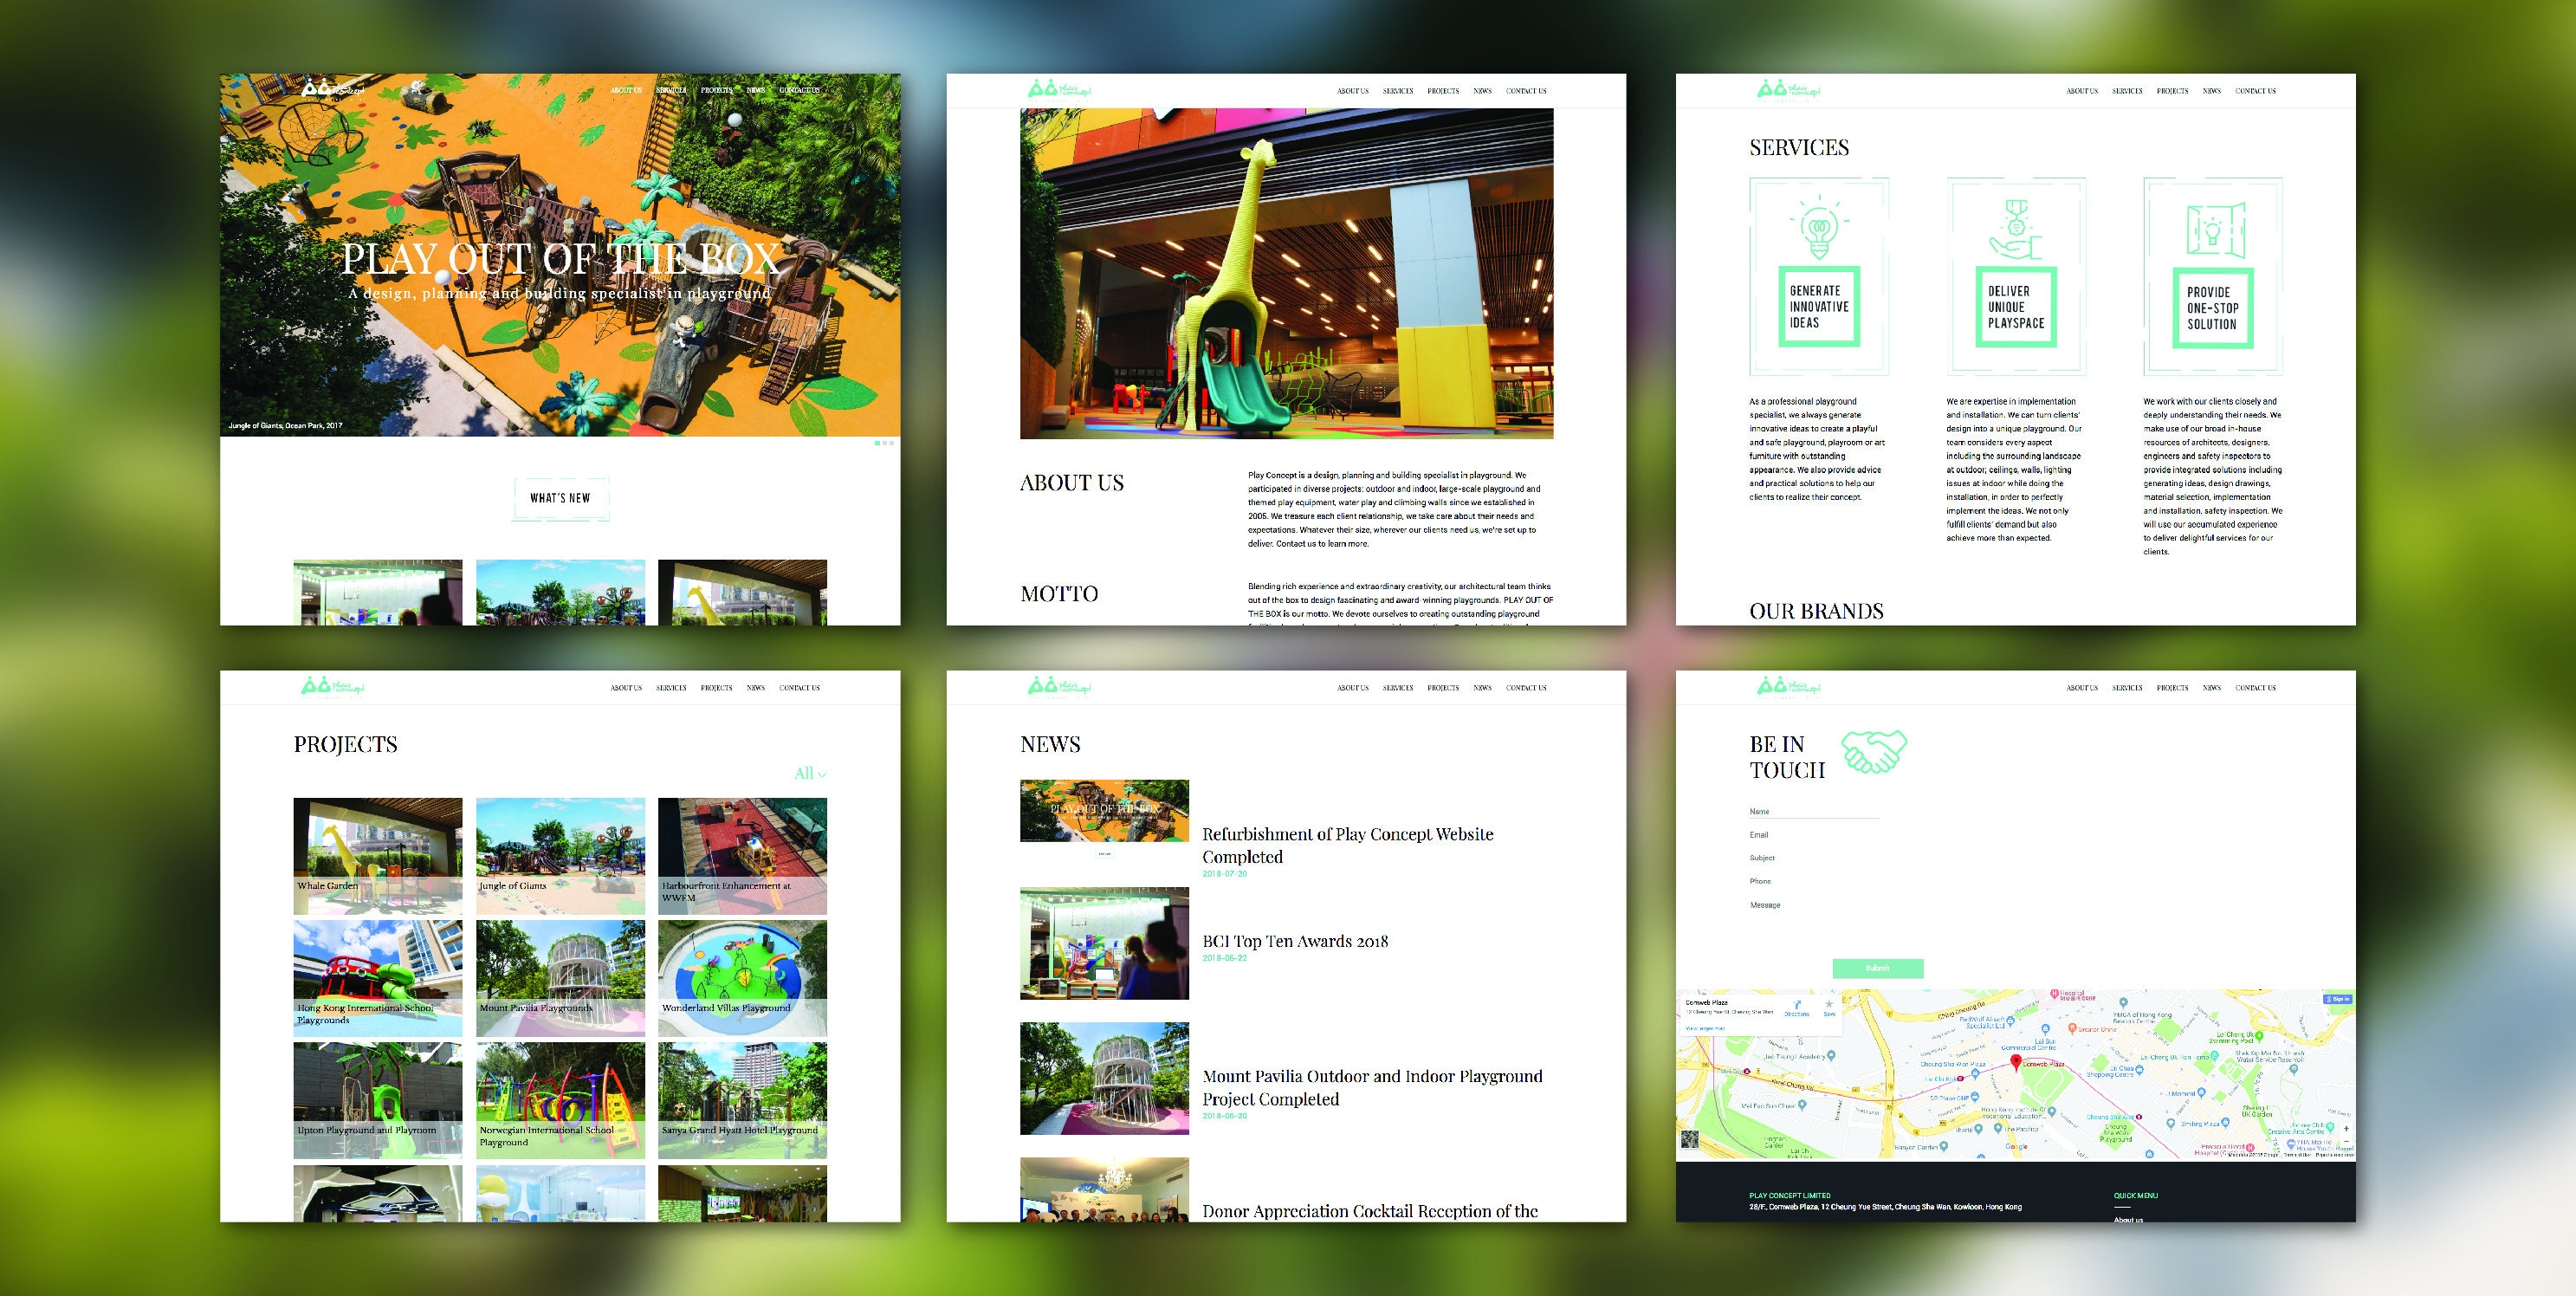 Play Concept - Refurbishment of Play Concept Website Completed - 1